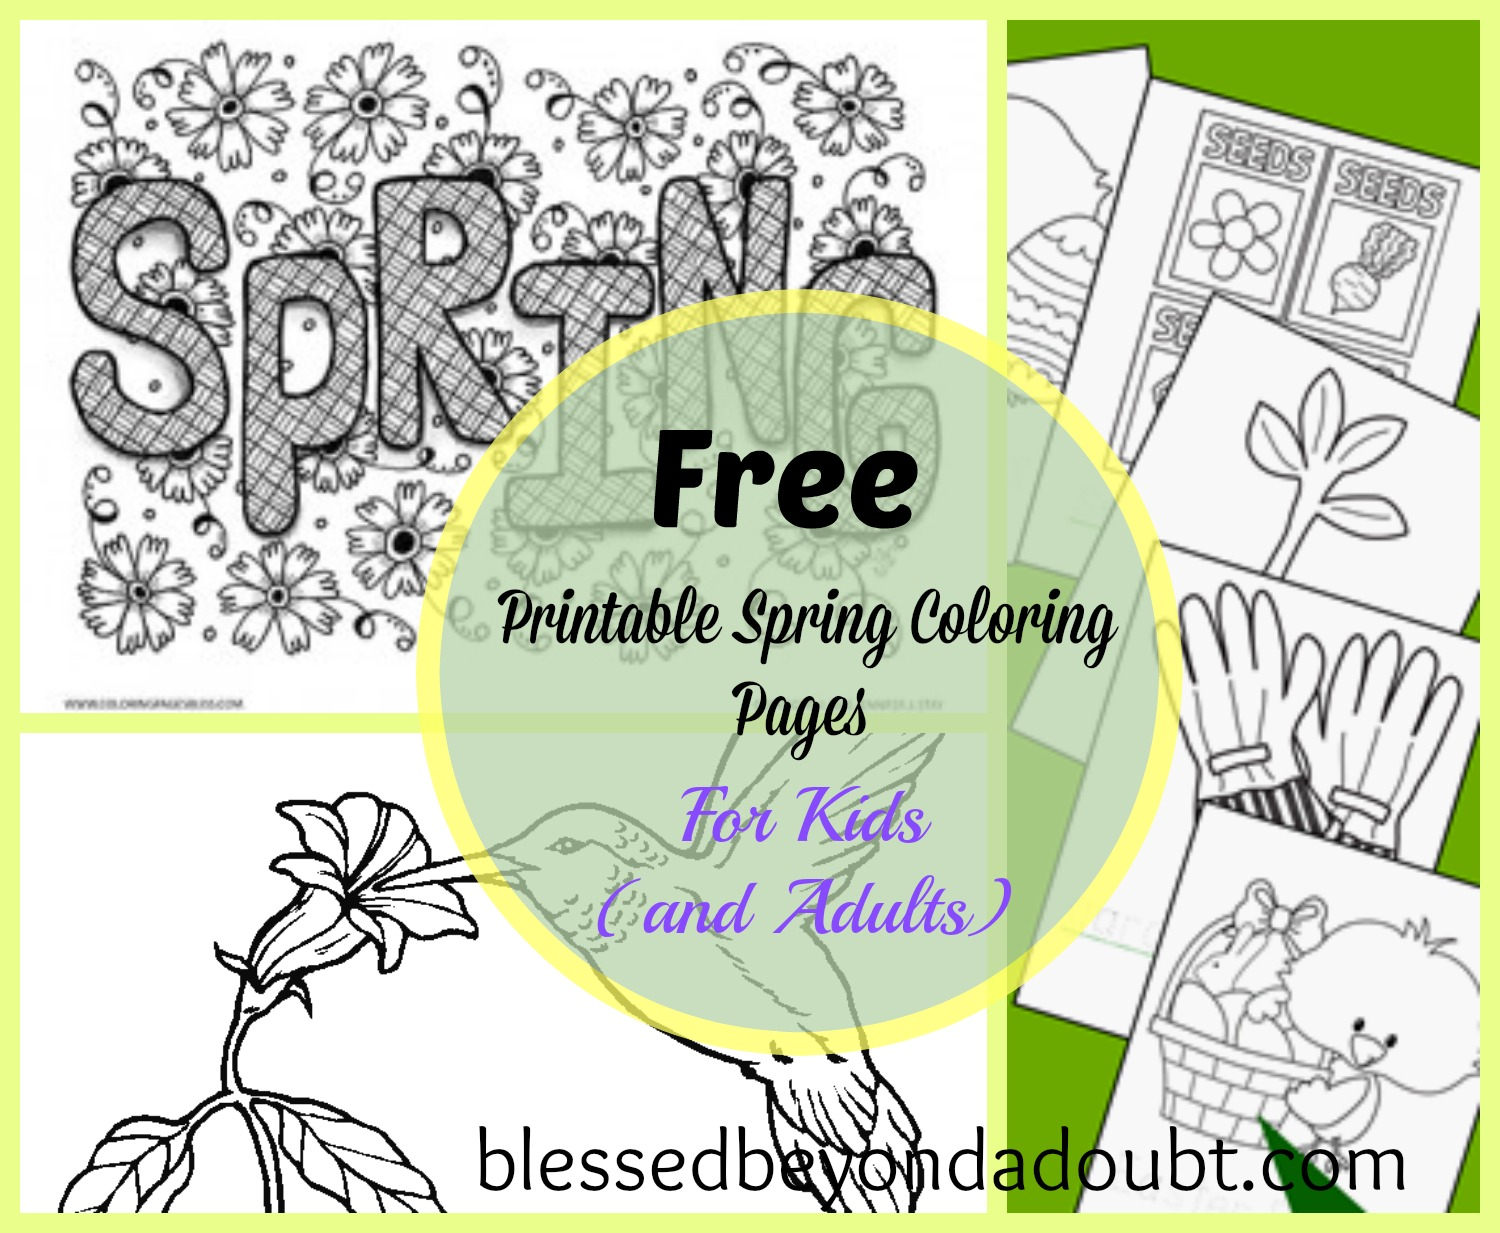 Spring coloring pages for adults free - Free Printable Spring Coloring Sheets For Kids